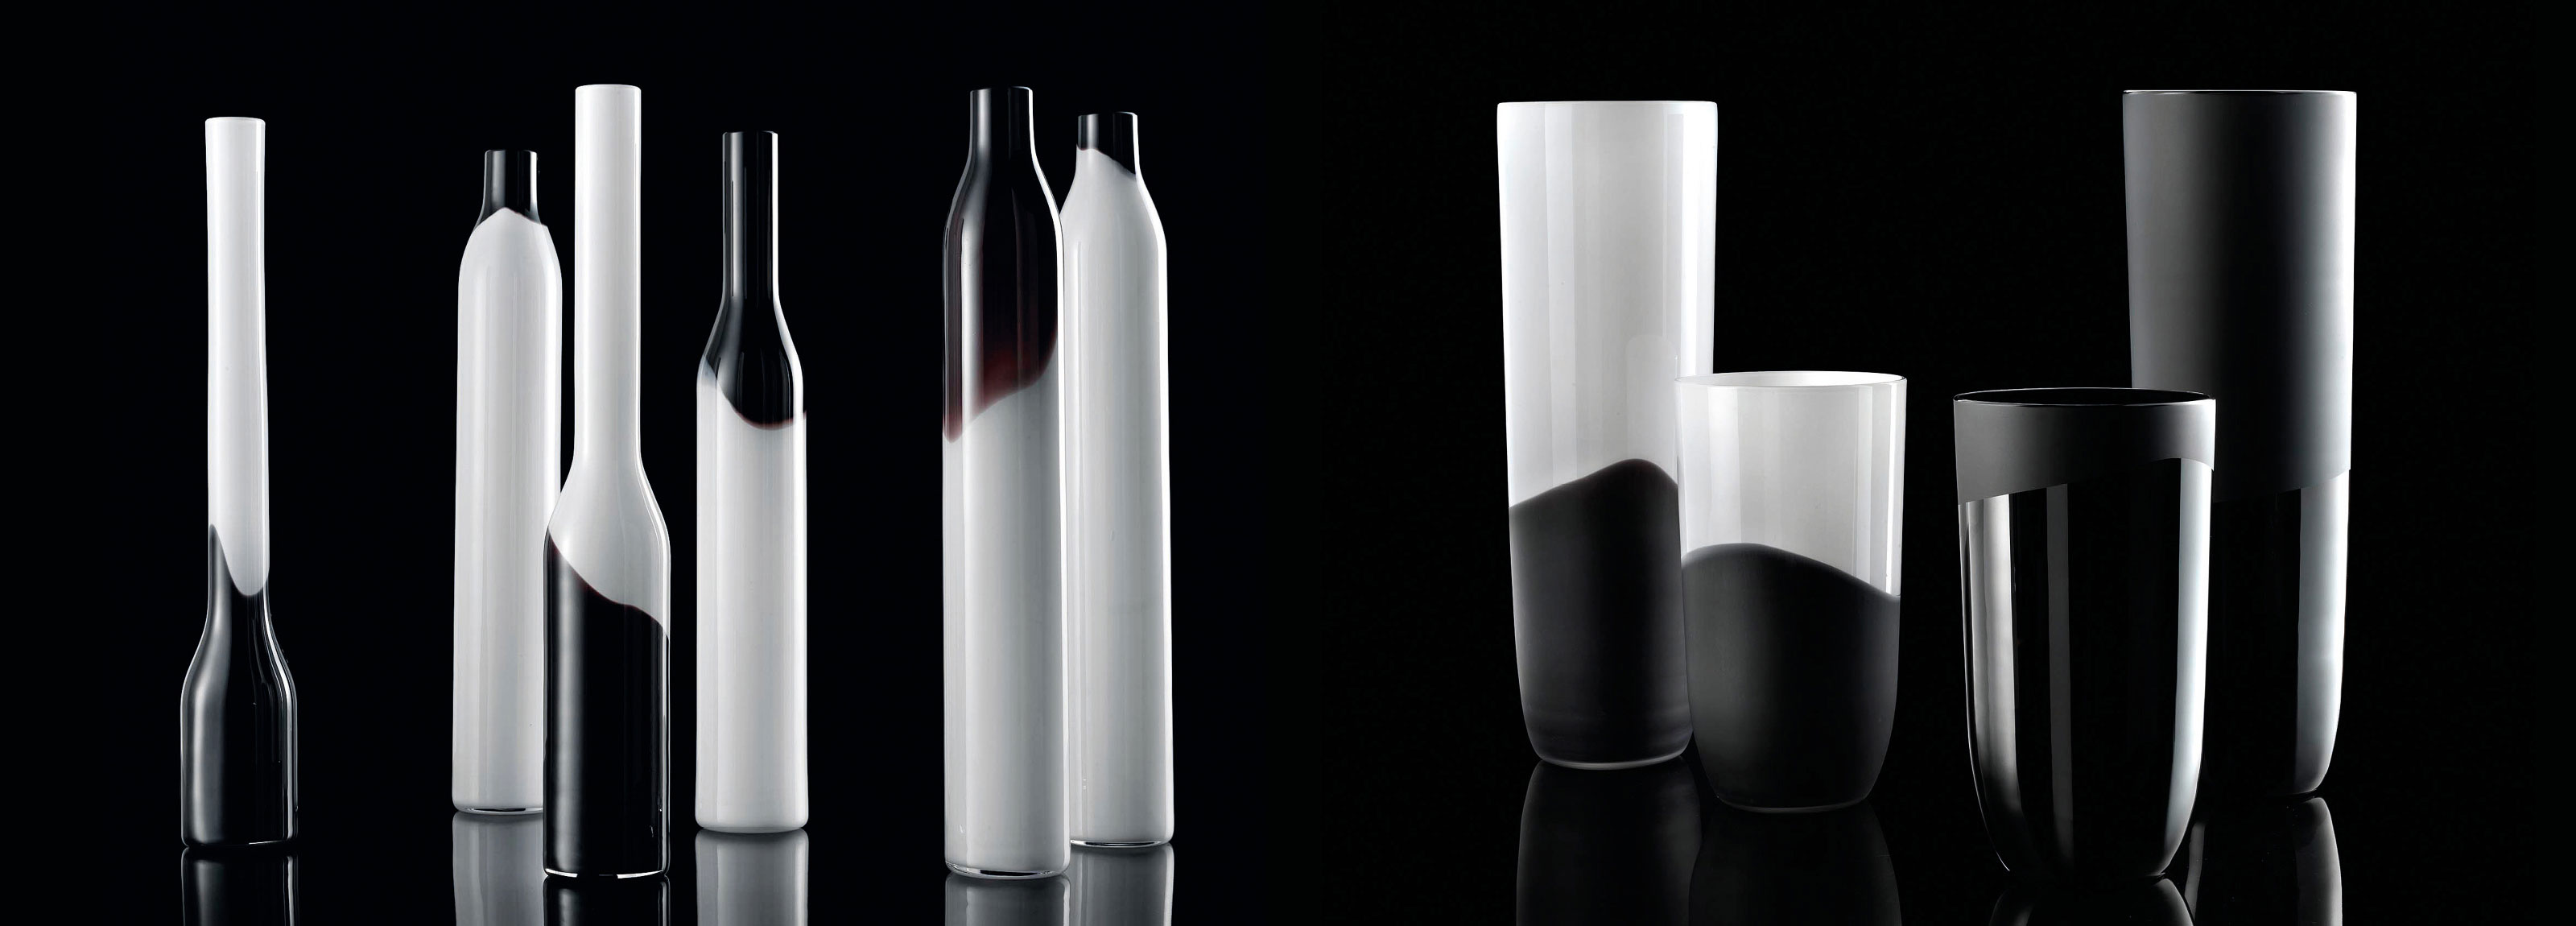 A creative concept by Hangar Design Group for a NasonMoretti's vase collection.